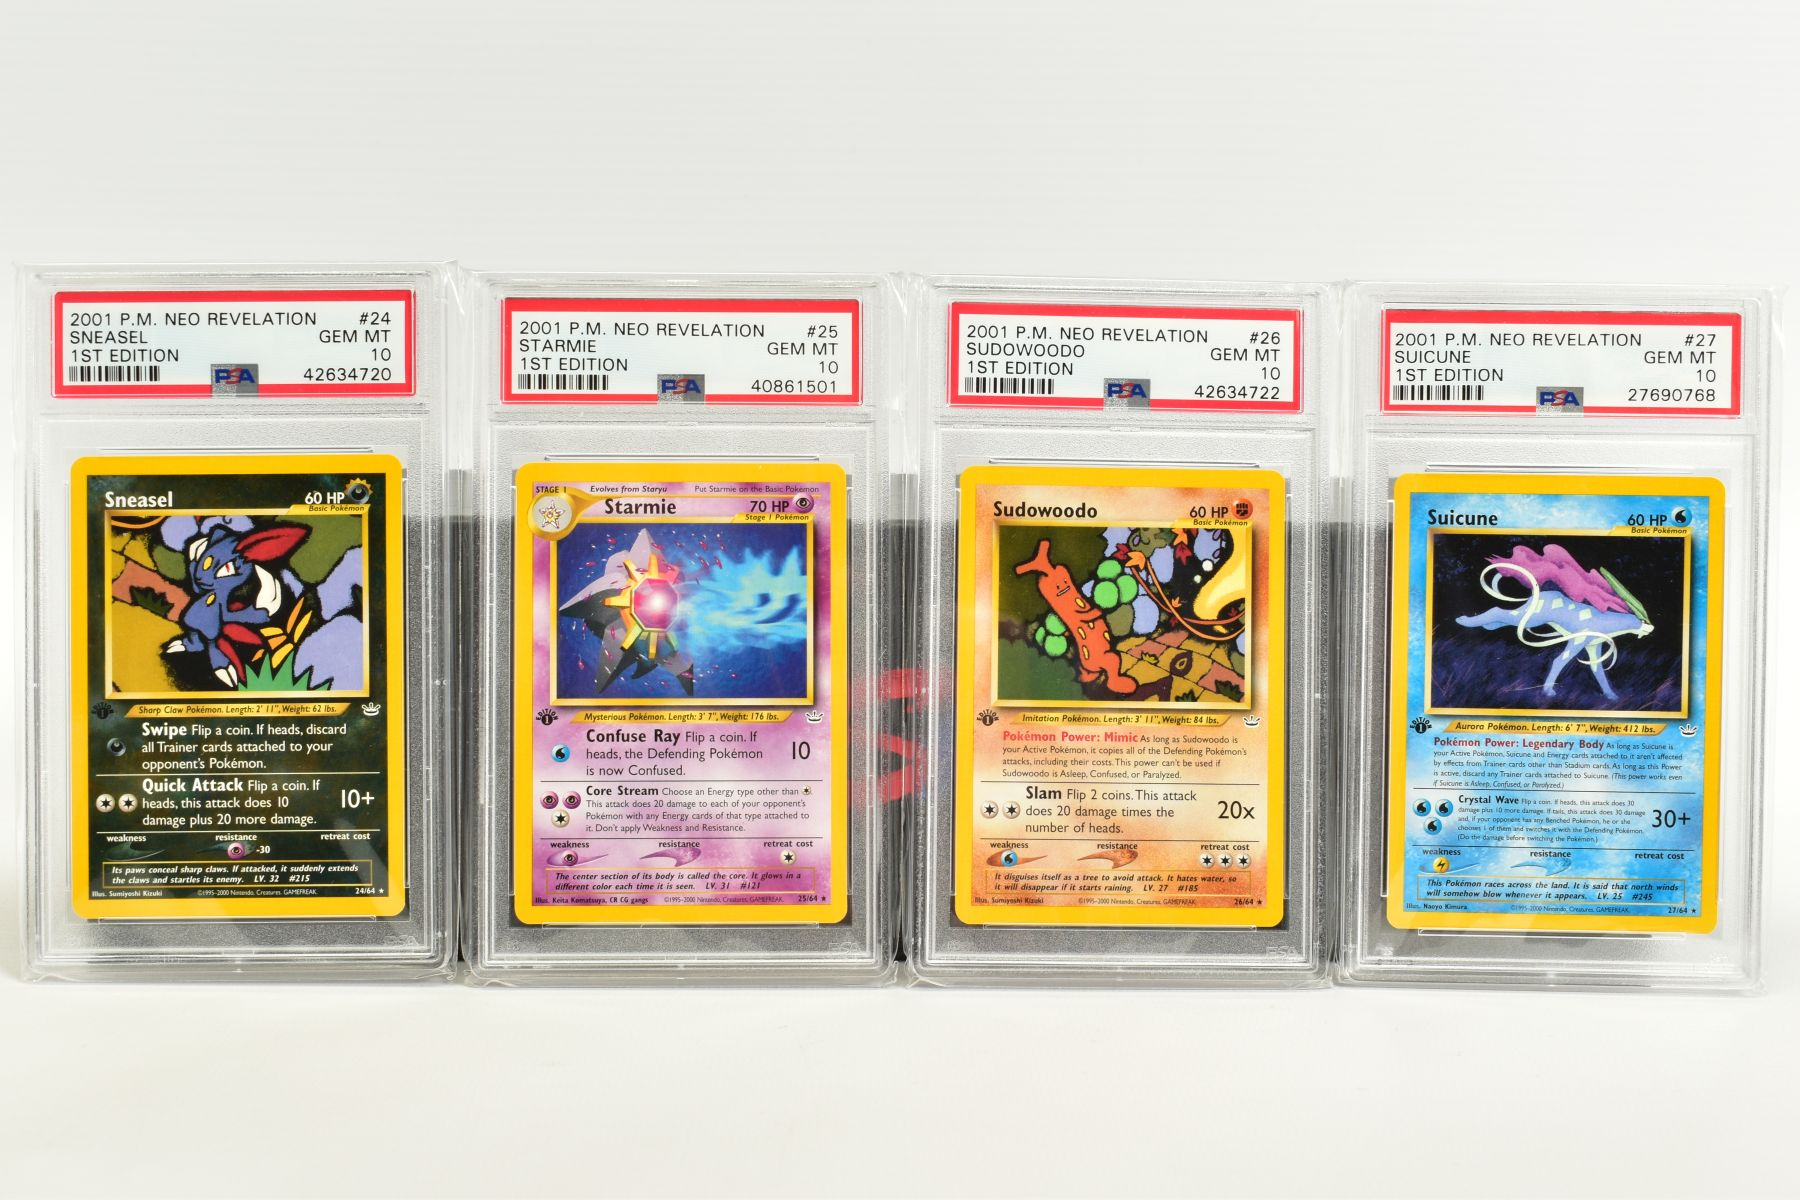 A QUANTITY OF PSA GRADED POKEMON 1ST EDITION NEO REVELATION SET CARDS, all are graded GEM MINT 10 - Image 5 of 14